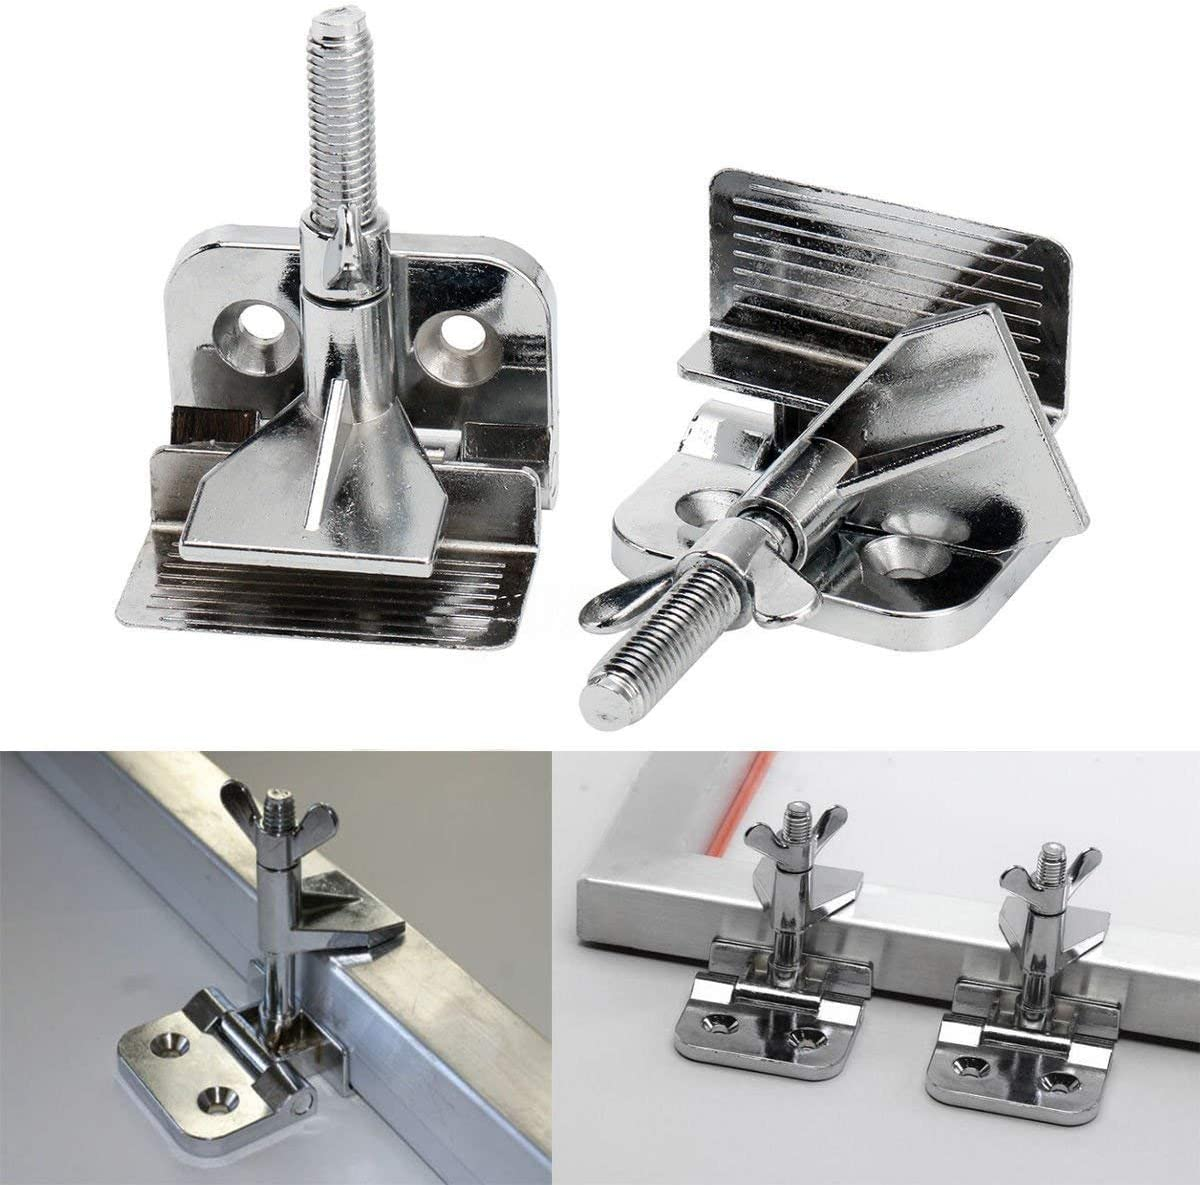 INTBUYING 2 pc of Screen Frame Butterfly Hinge Clamp for Silk Screen Printing Sturdy Quality